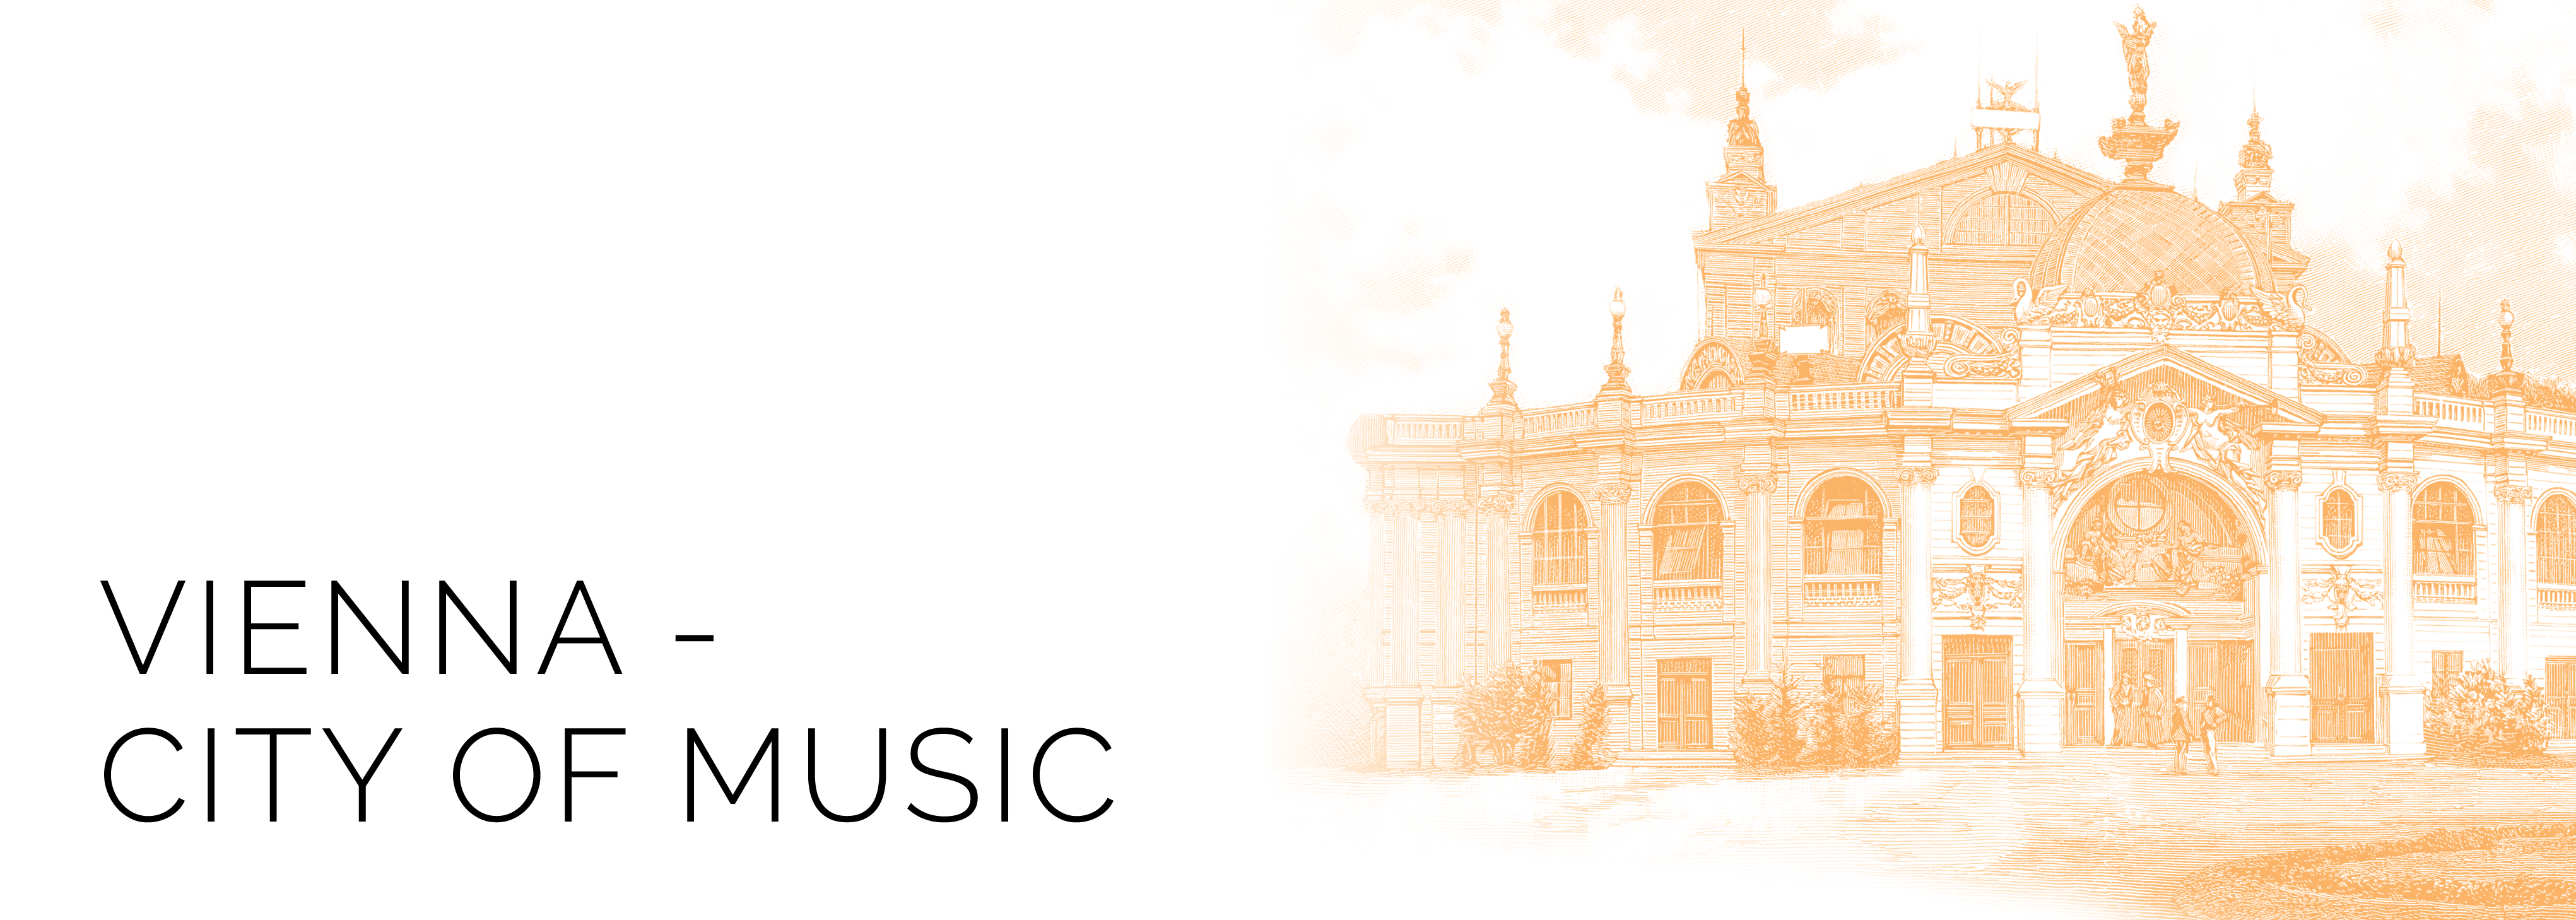 Vienna - City of Music